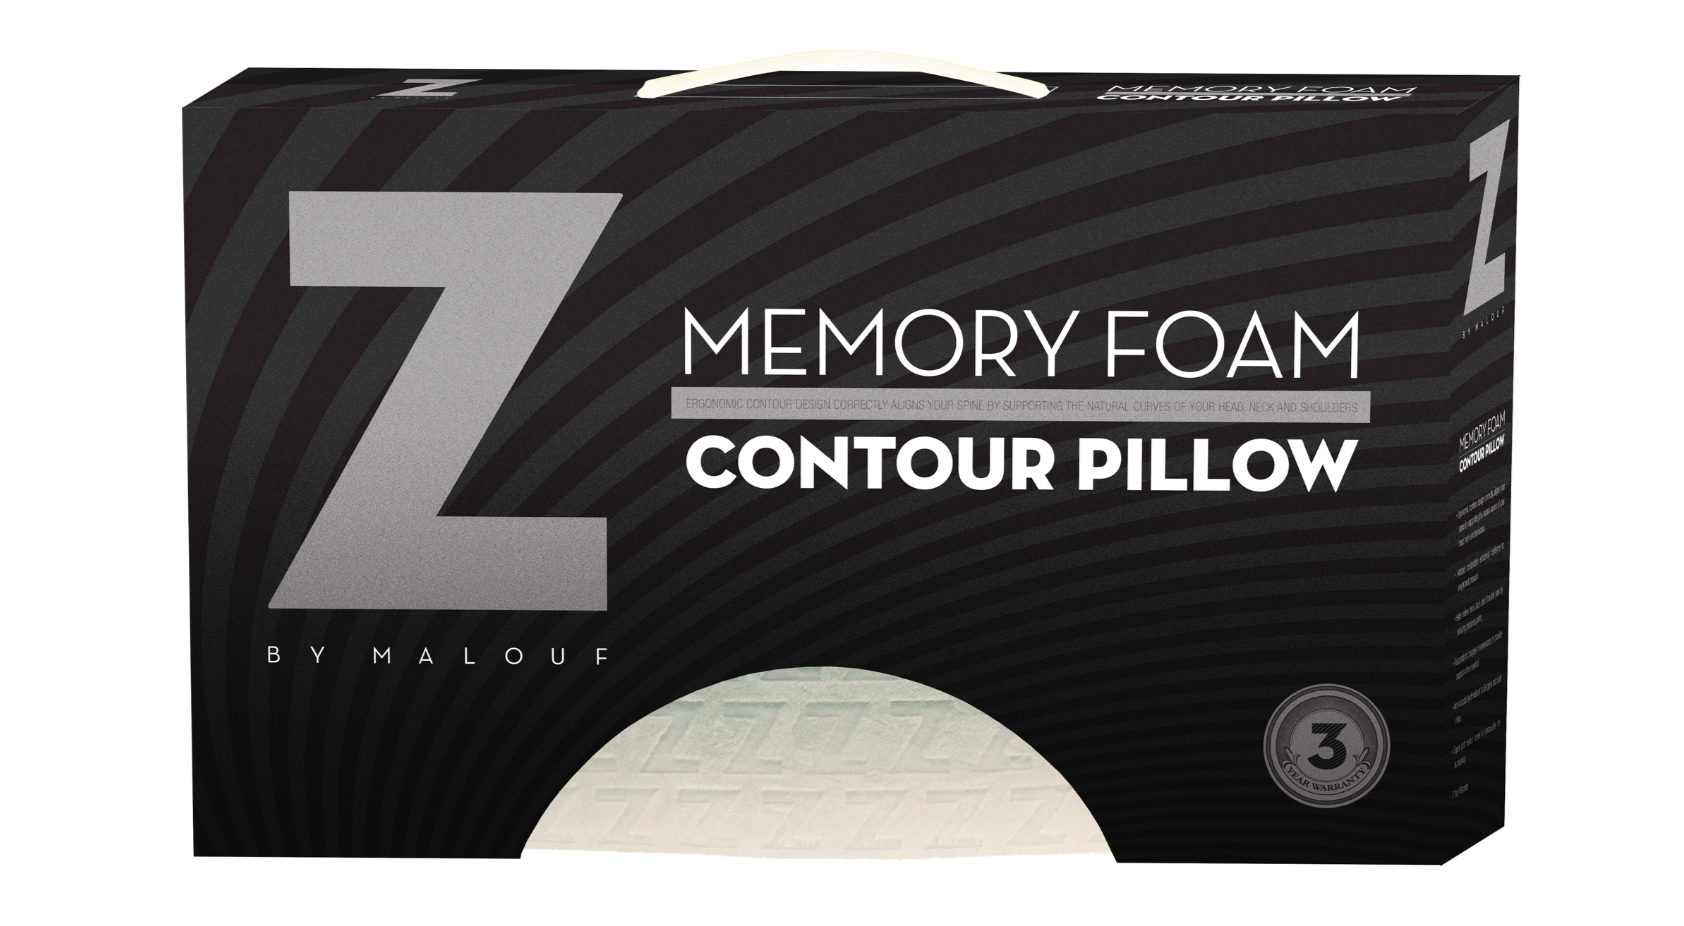 Parklane Mattresses - Malouf Memory Foam Contour Pillow